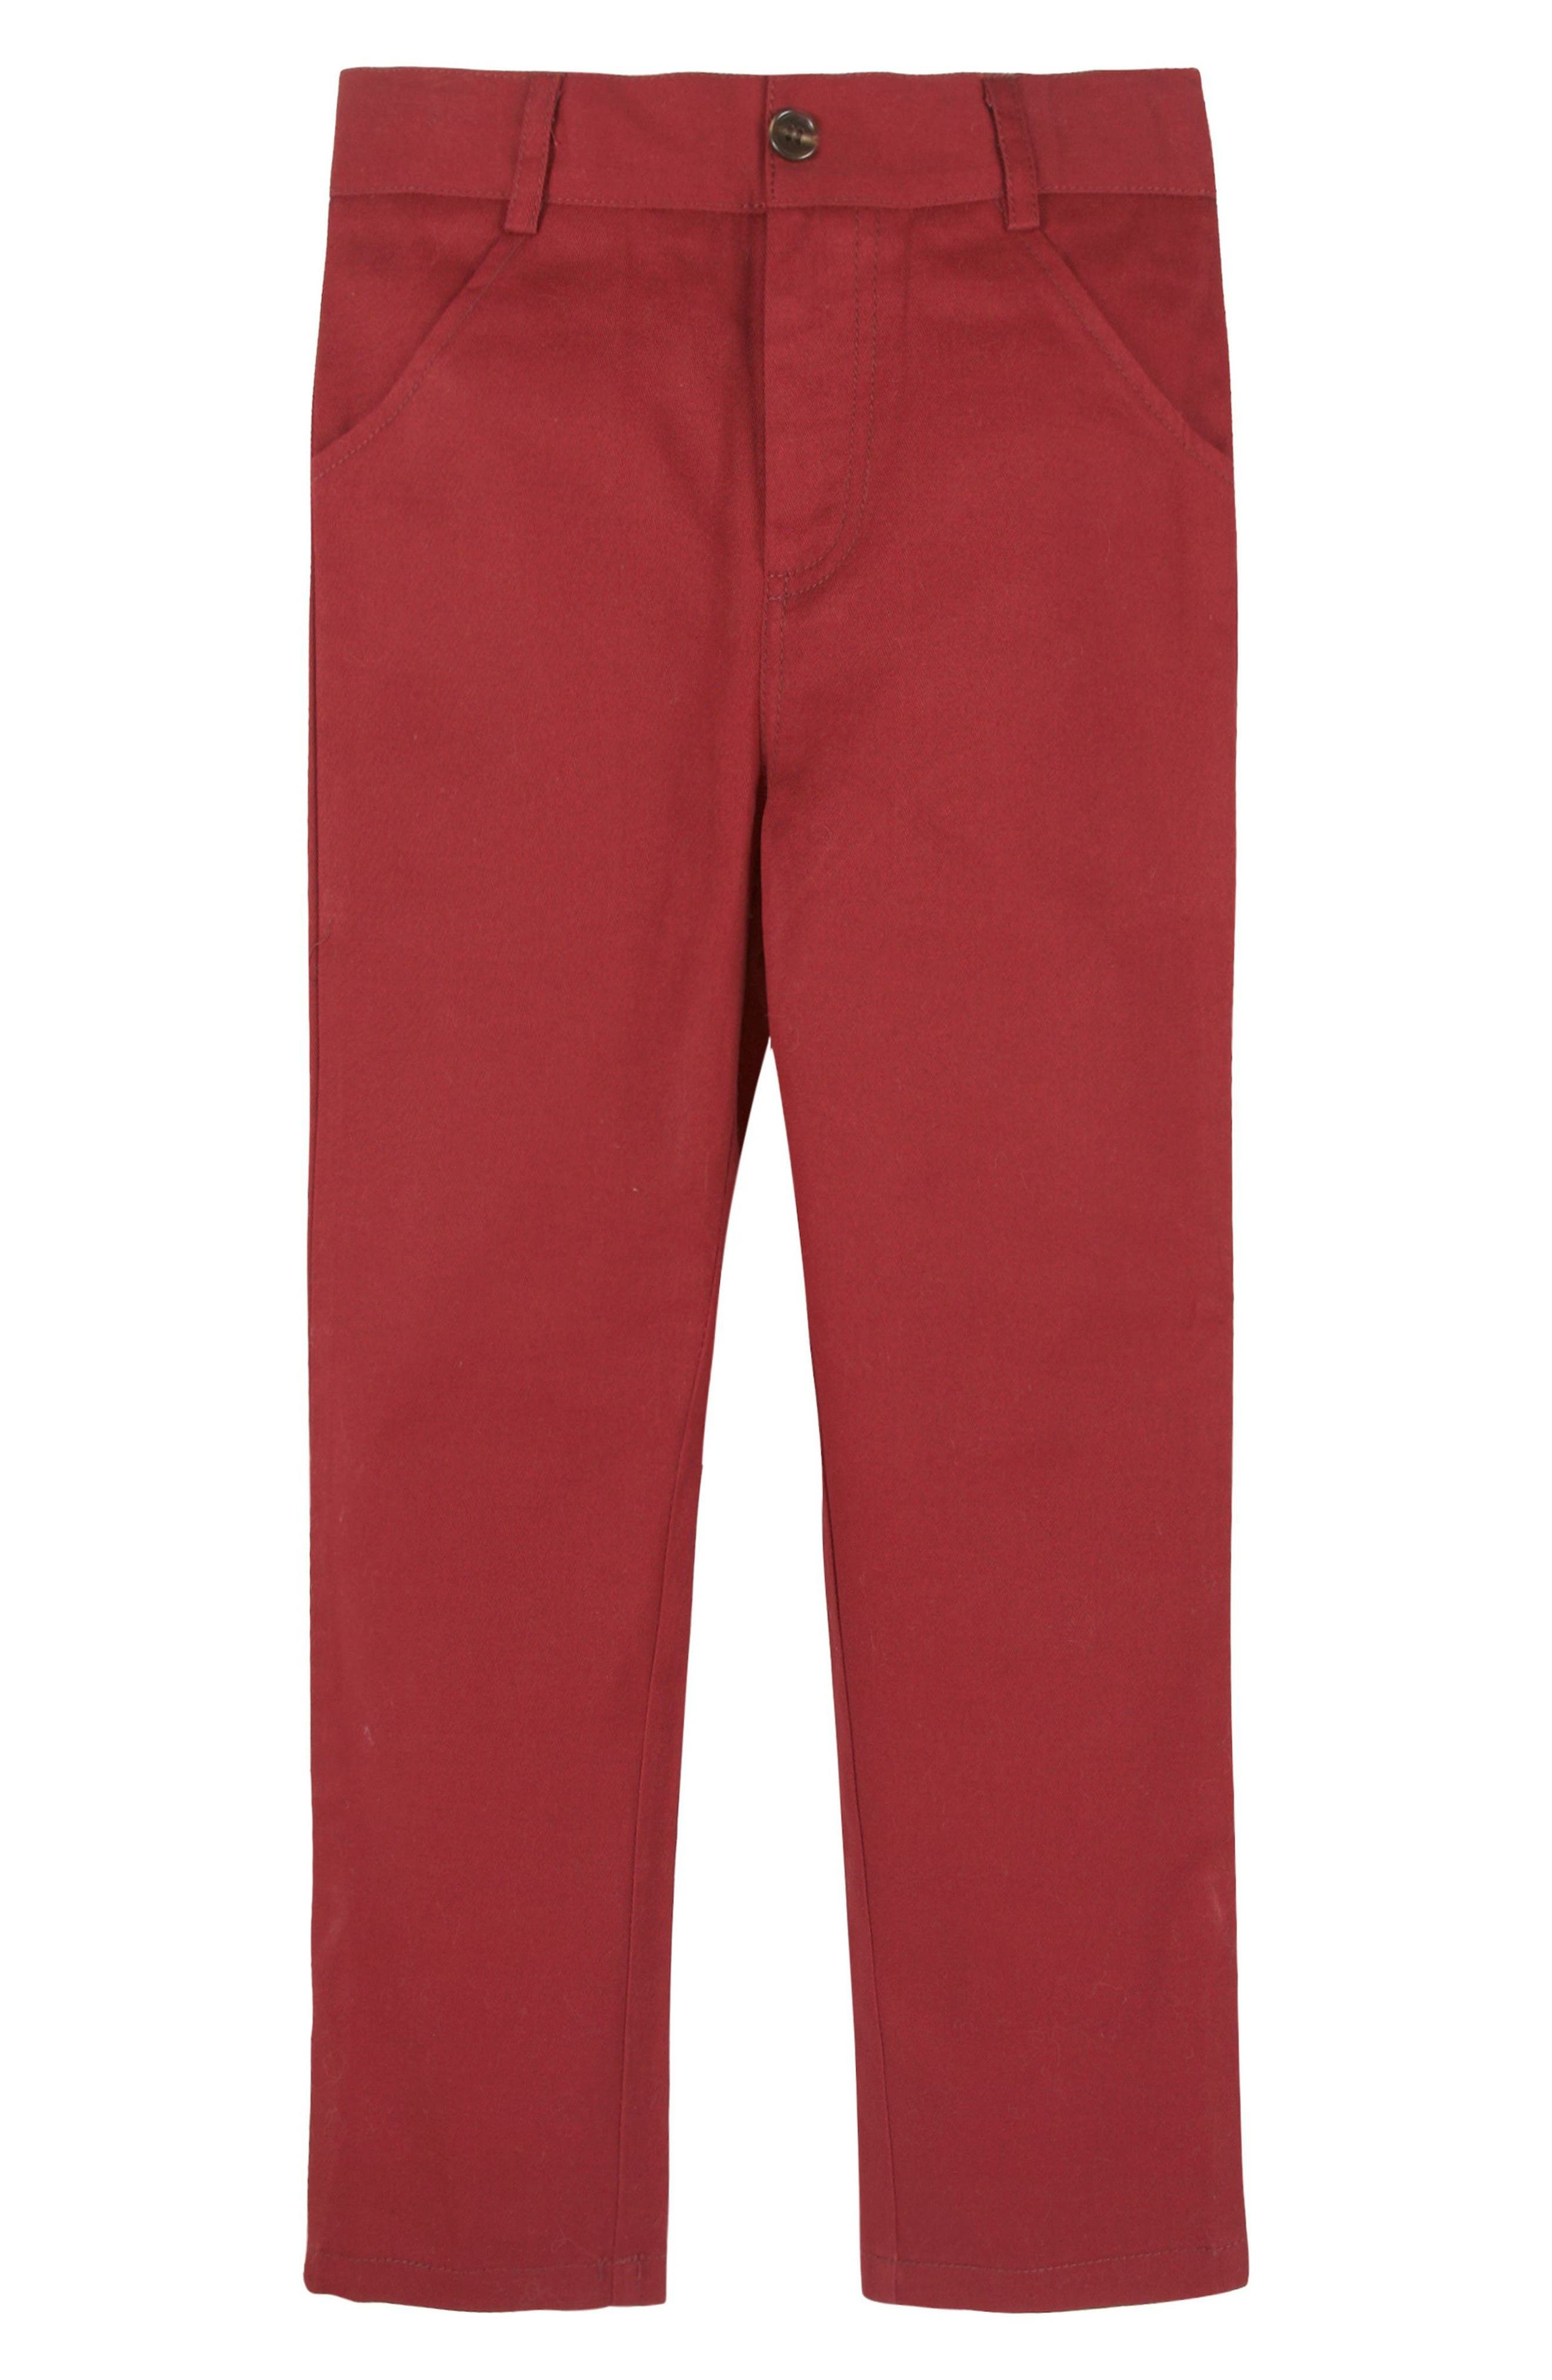 Andy & Evan Stretch Cotton Twill Pants (Baby Boys)